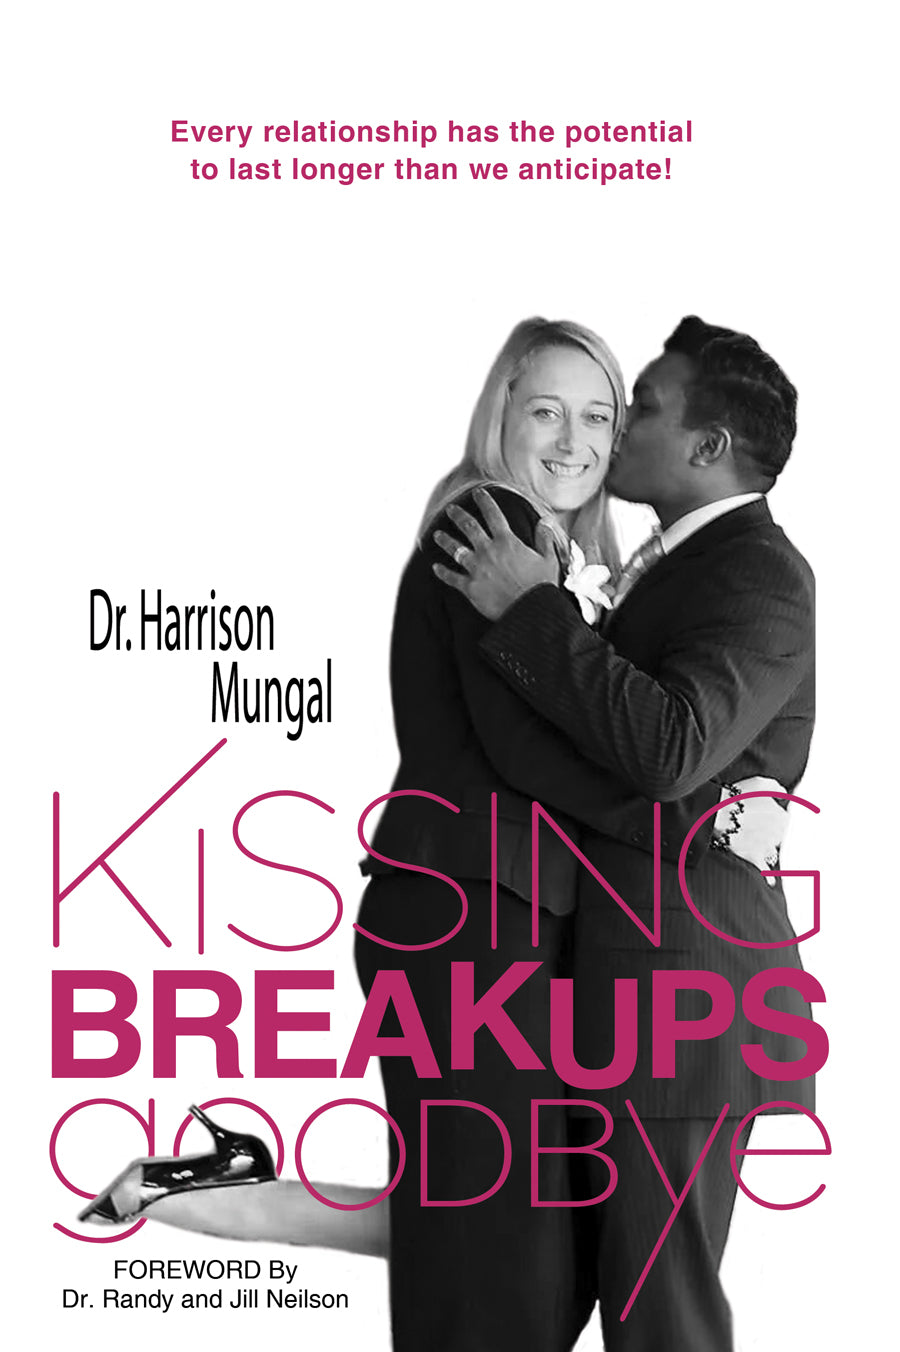 Kissing Breakups Goodbye: <br><small>Every Relationship Has the Power to Last Longer than We Anticipate!</small>